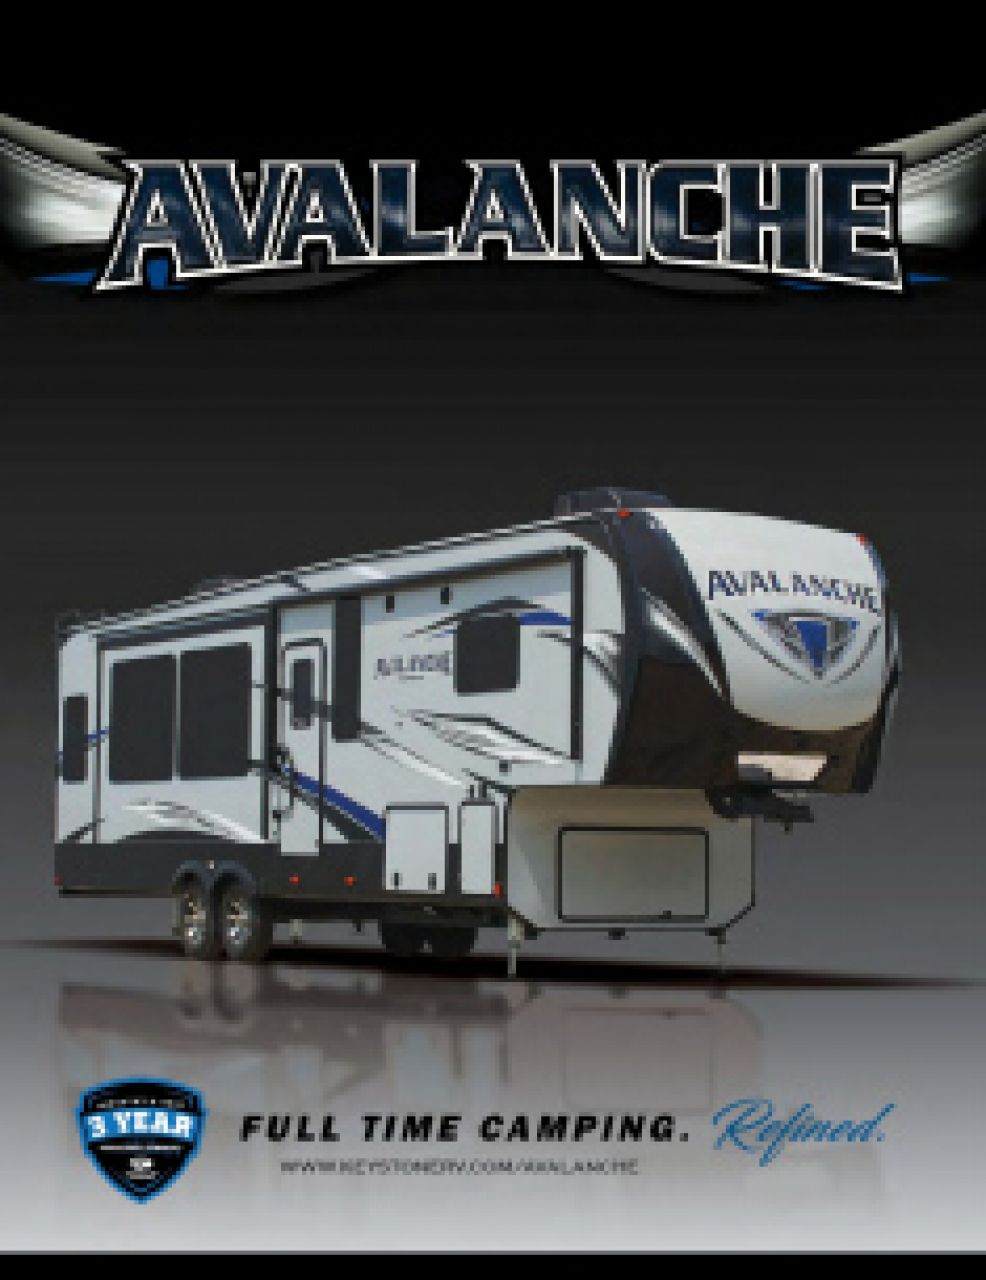 2019 Keystone Avalanche RV Brochure Cover